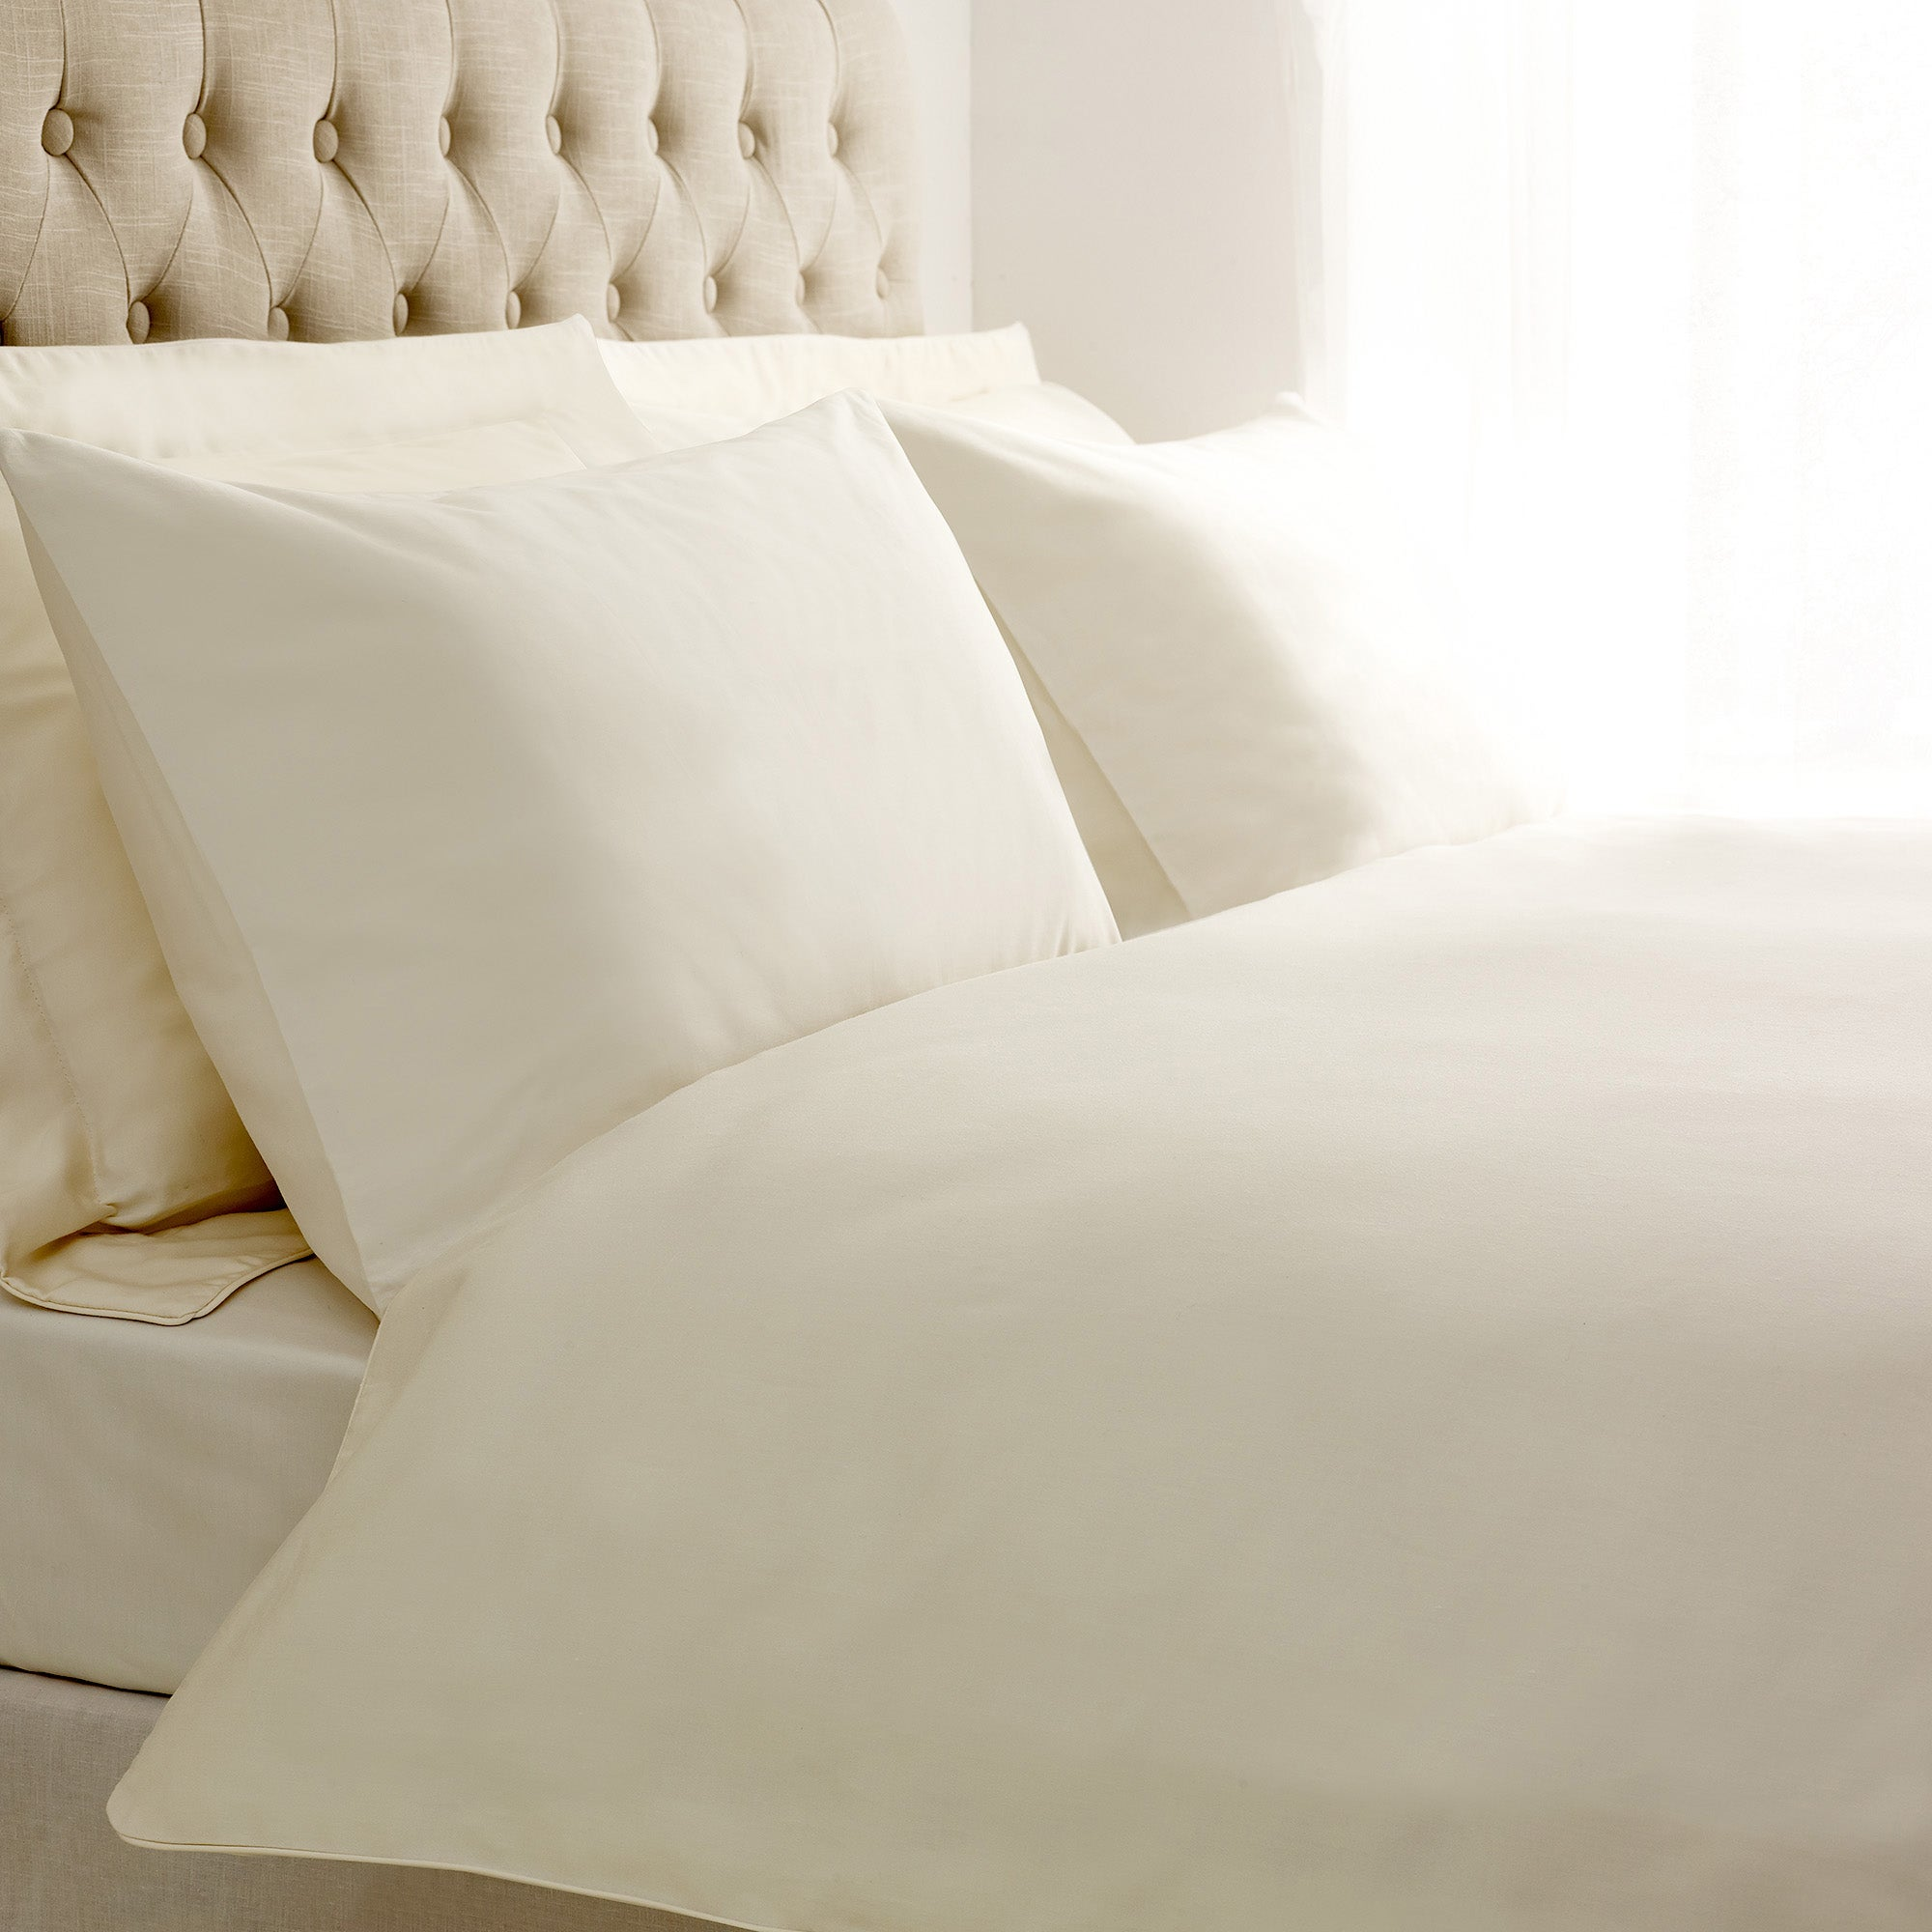 Image of 5A Fifth Avenue 400 Thread Count 100% Cotton Plain Cream Piped Duvet Cover Cream